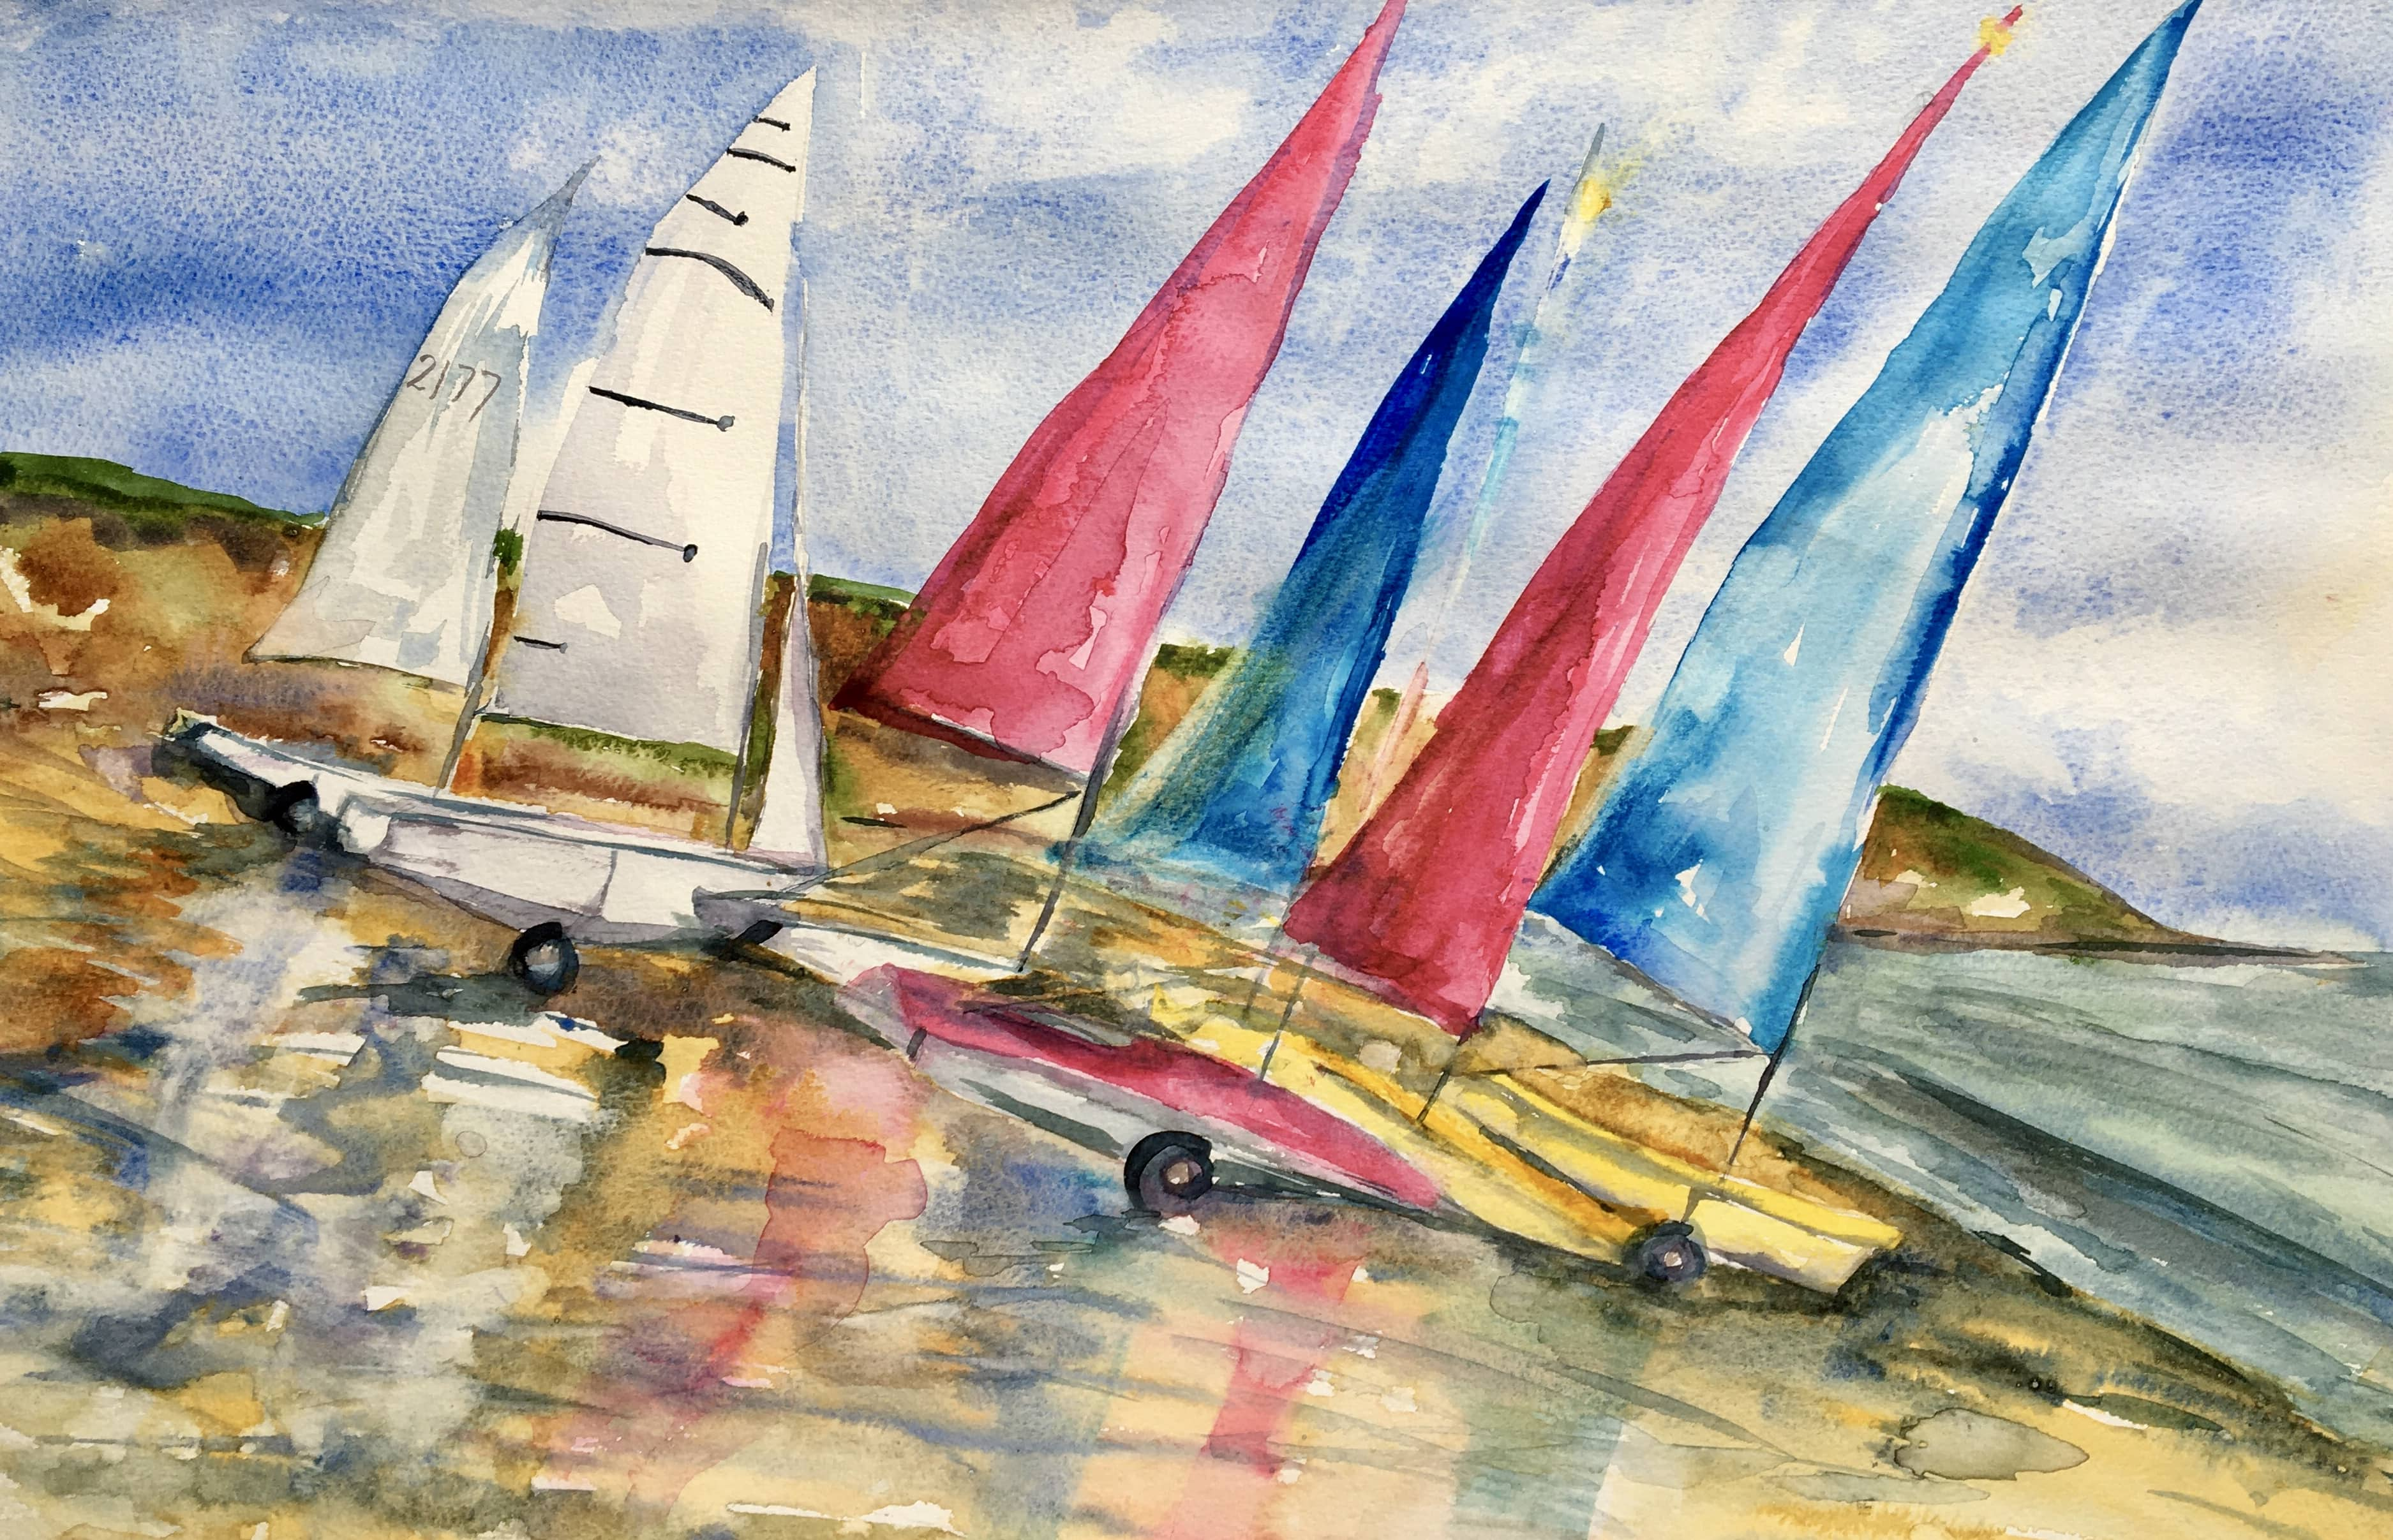 watercolour of siling boats on the beach red blue and white sails